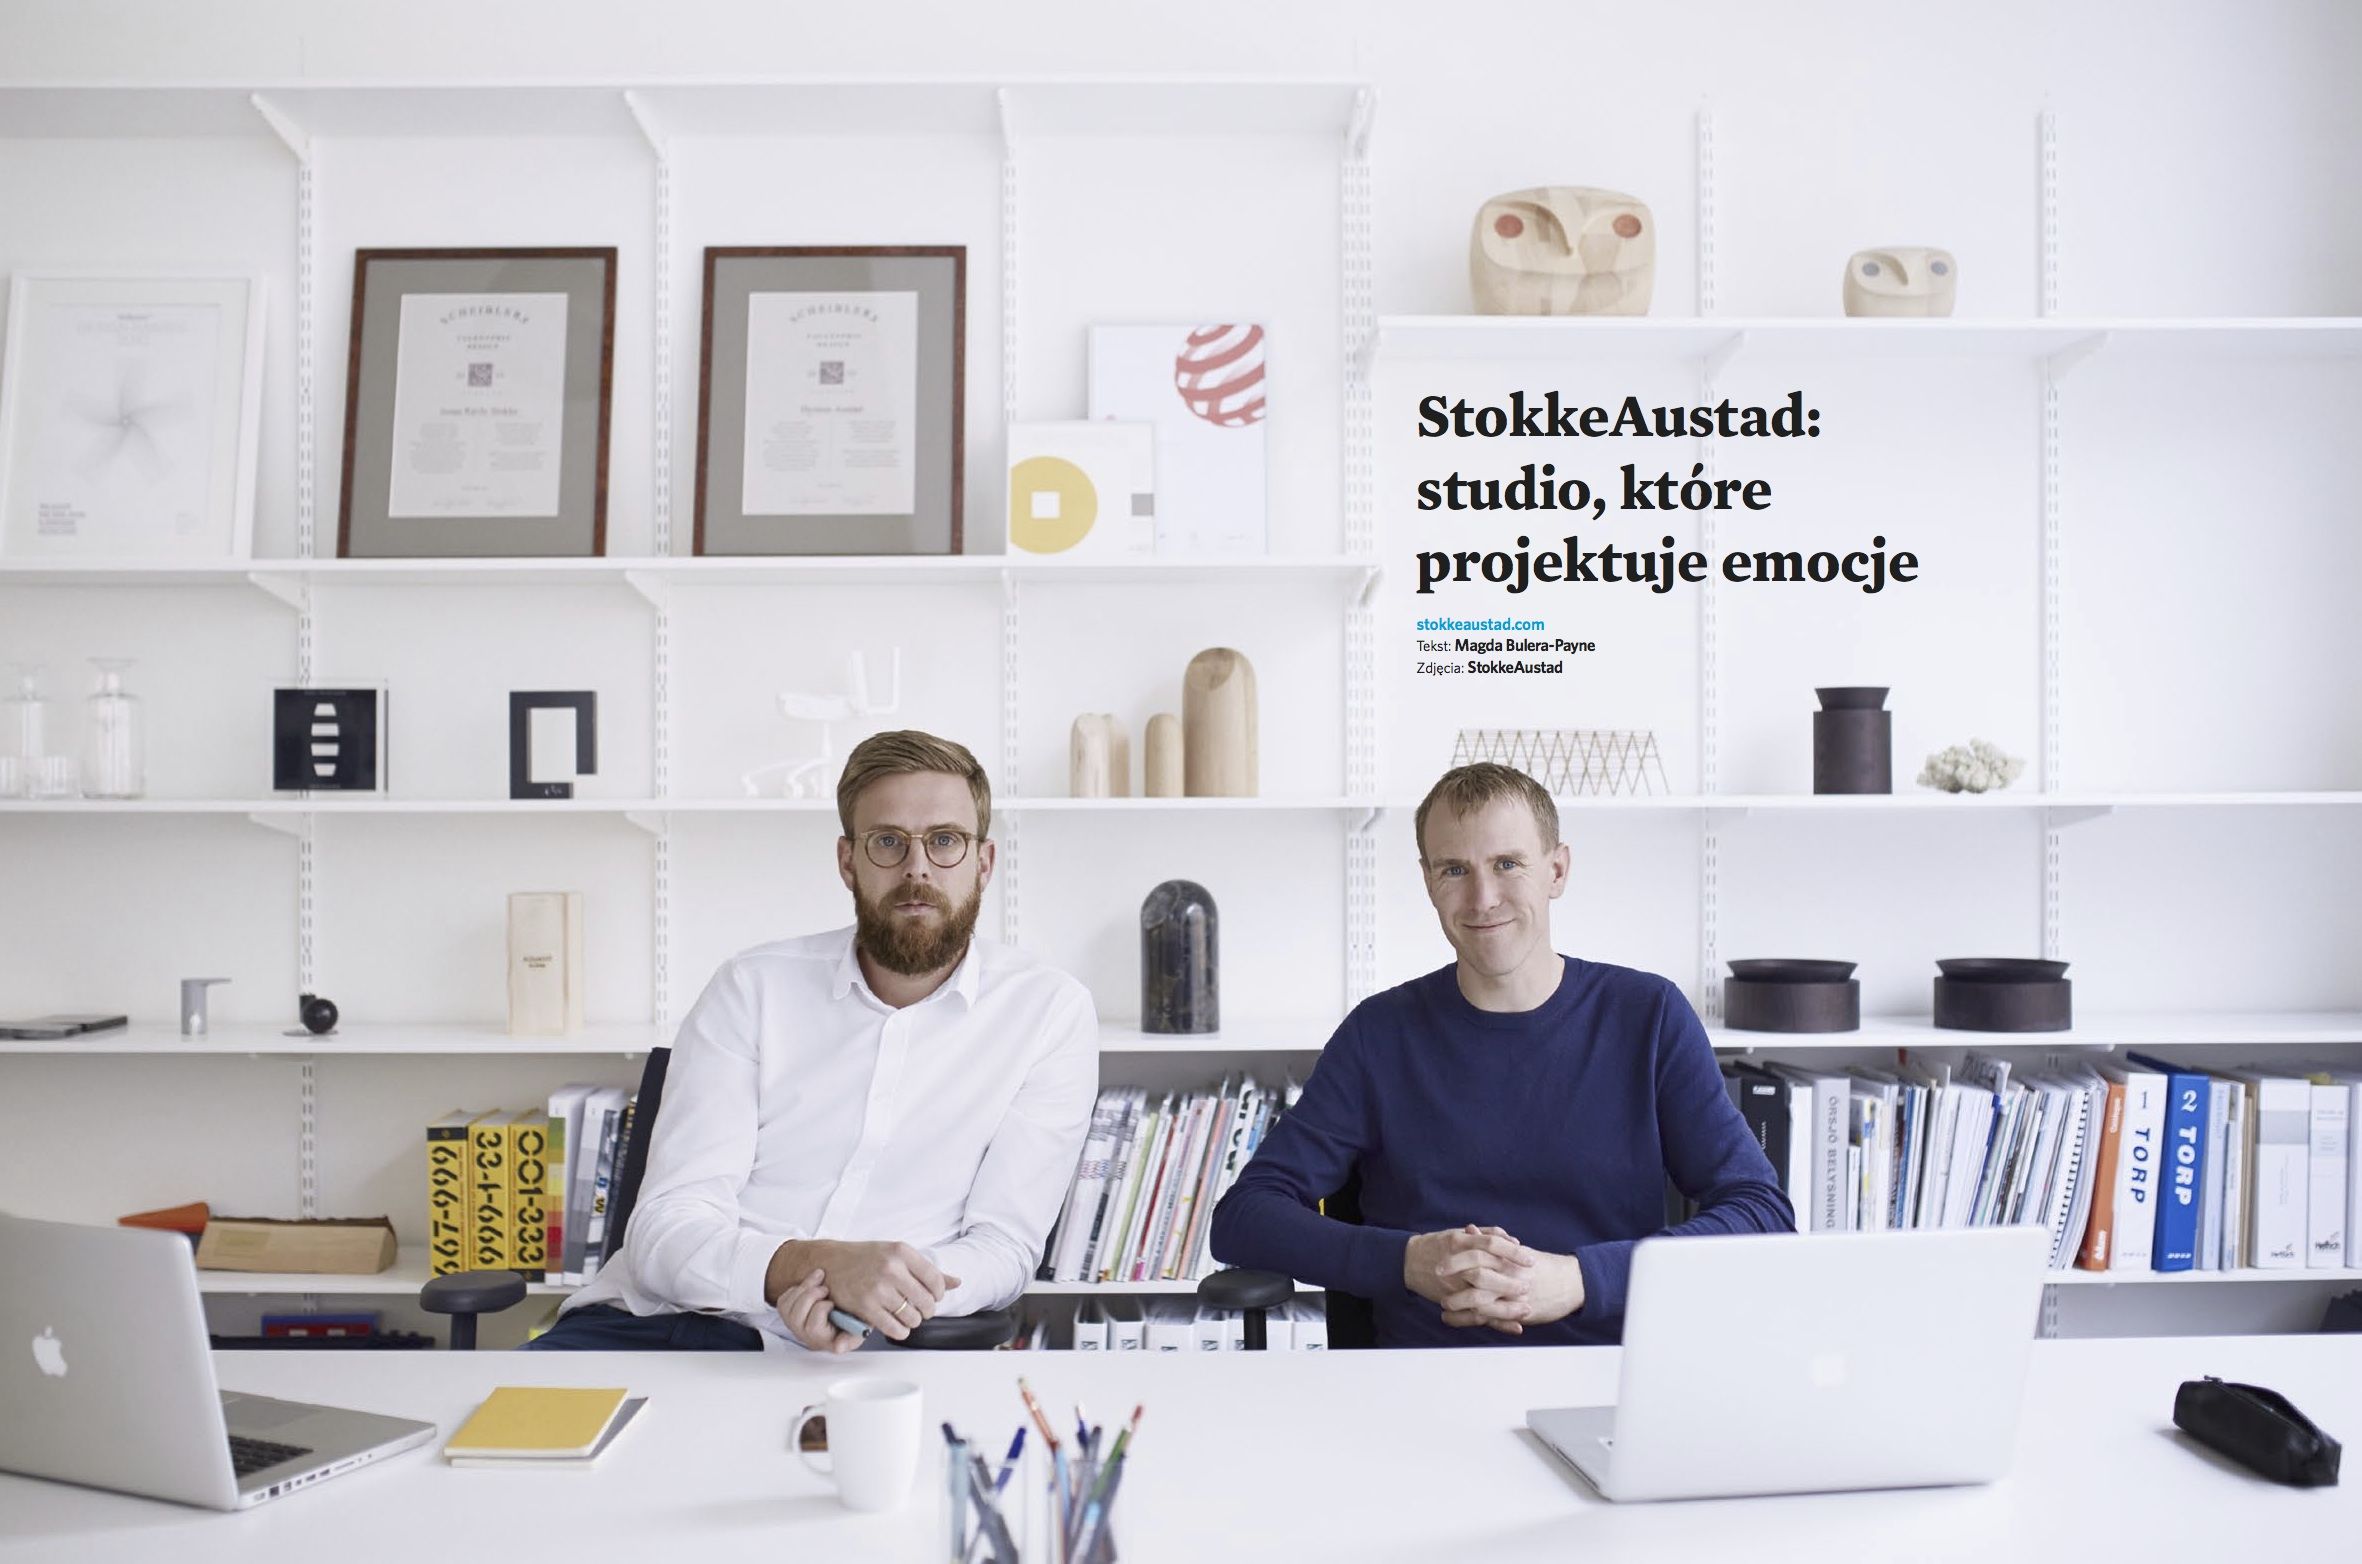 StokkeAustad, the studio which designs emotions